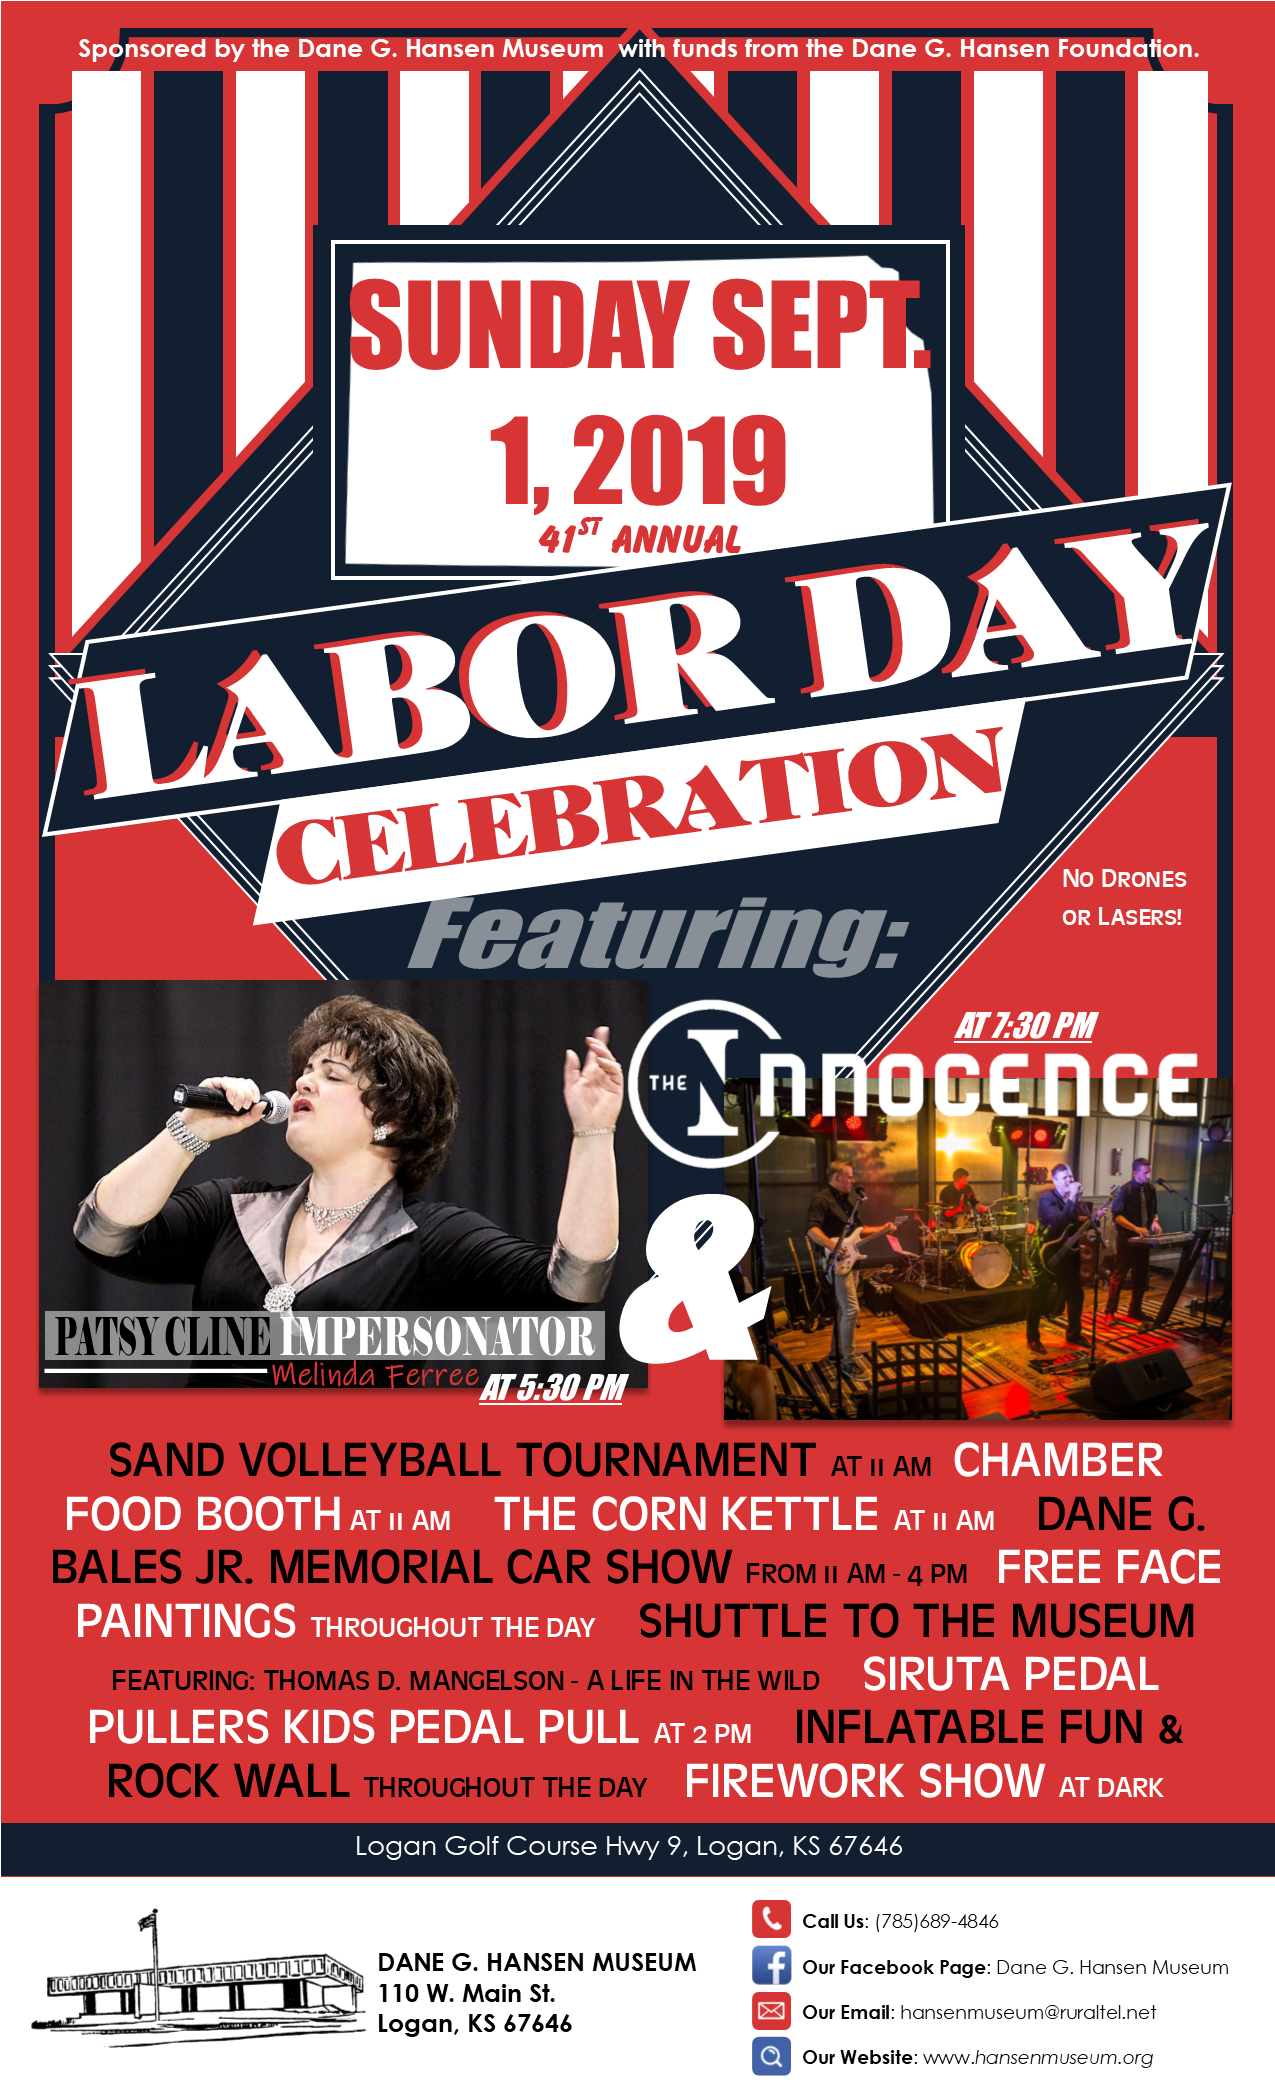 41st Annual Labor Day